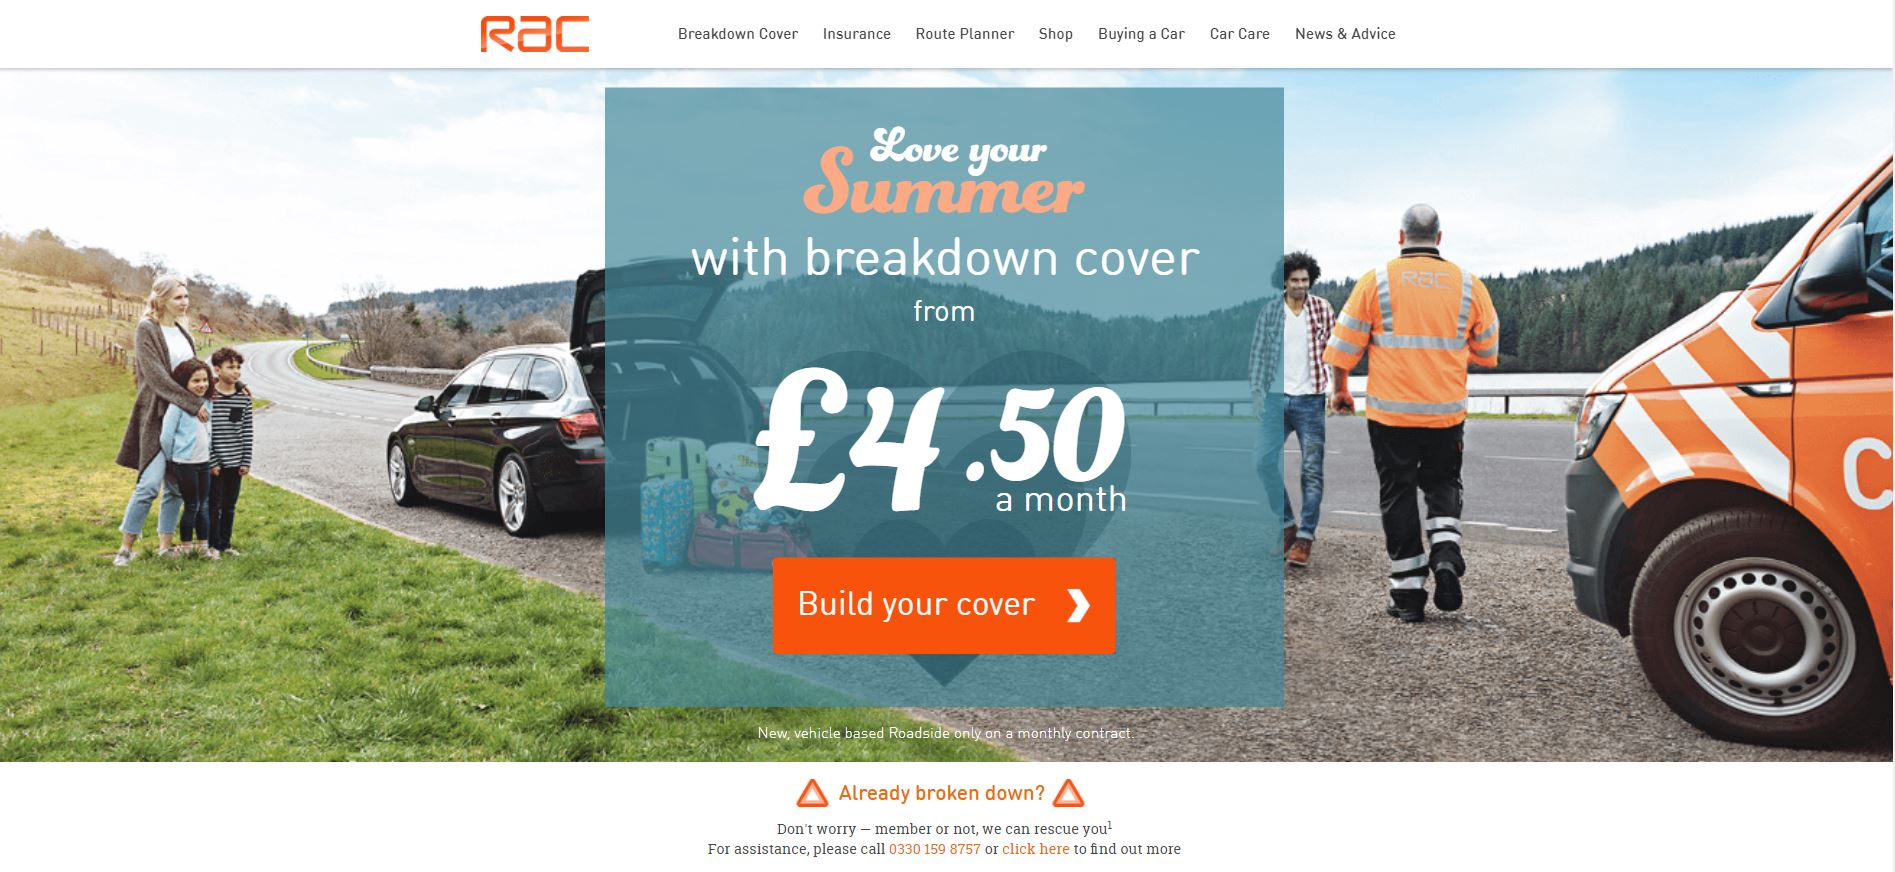 RAC website home page